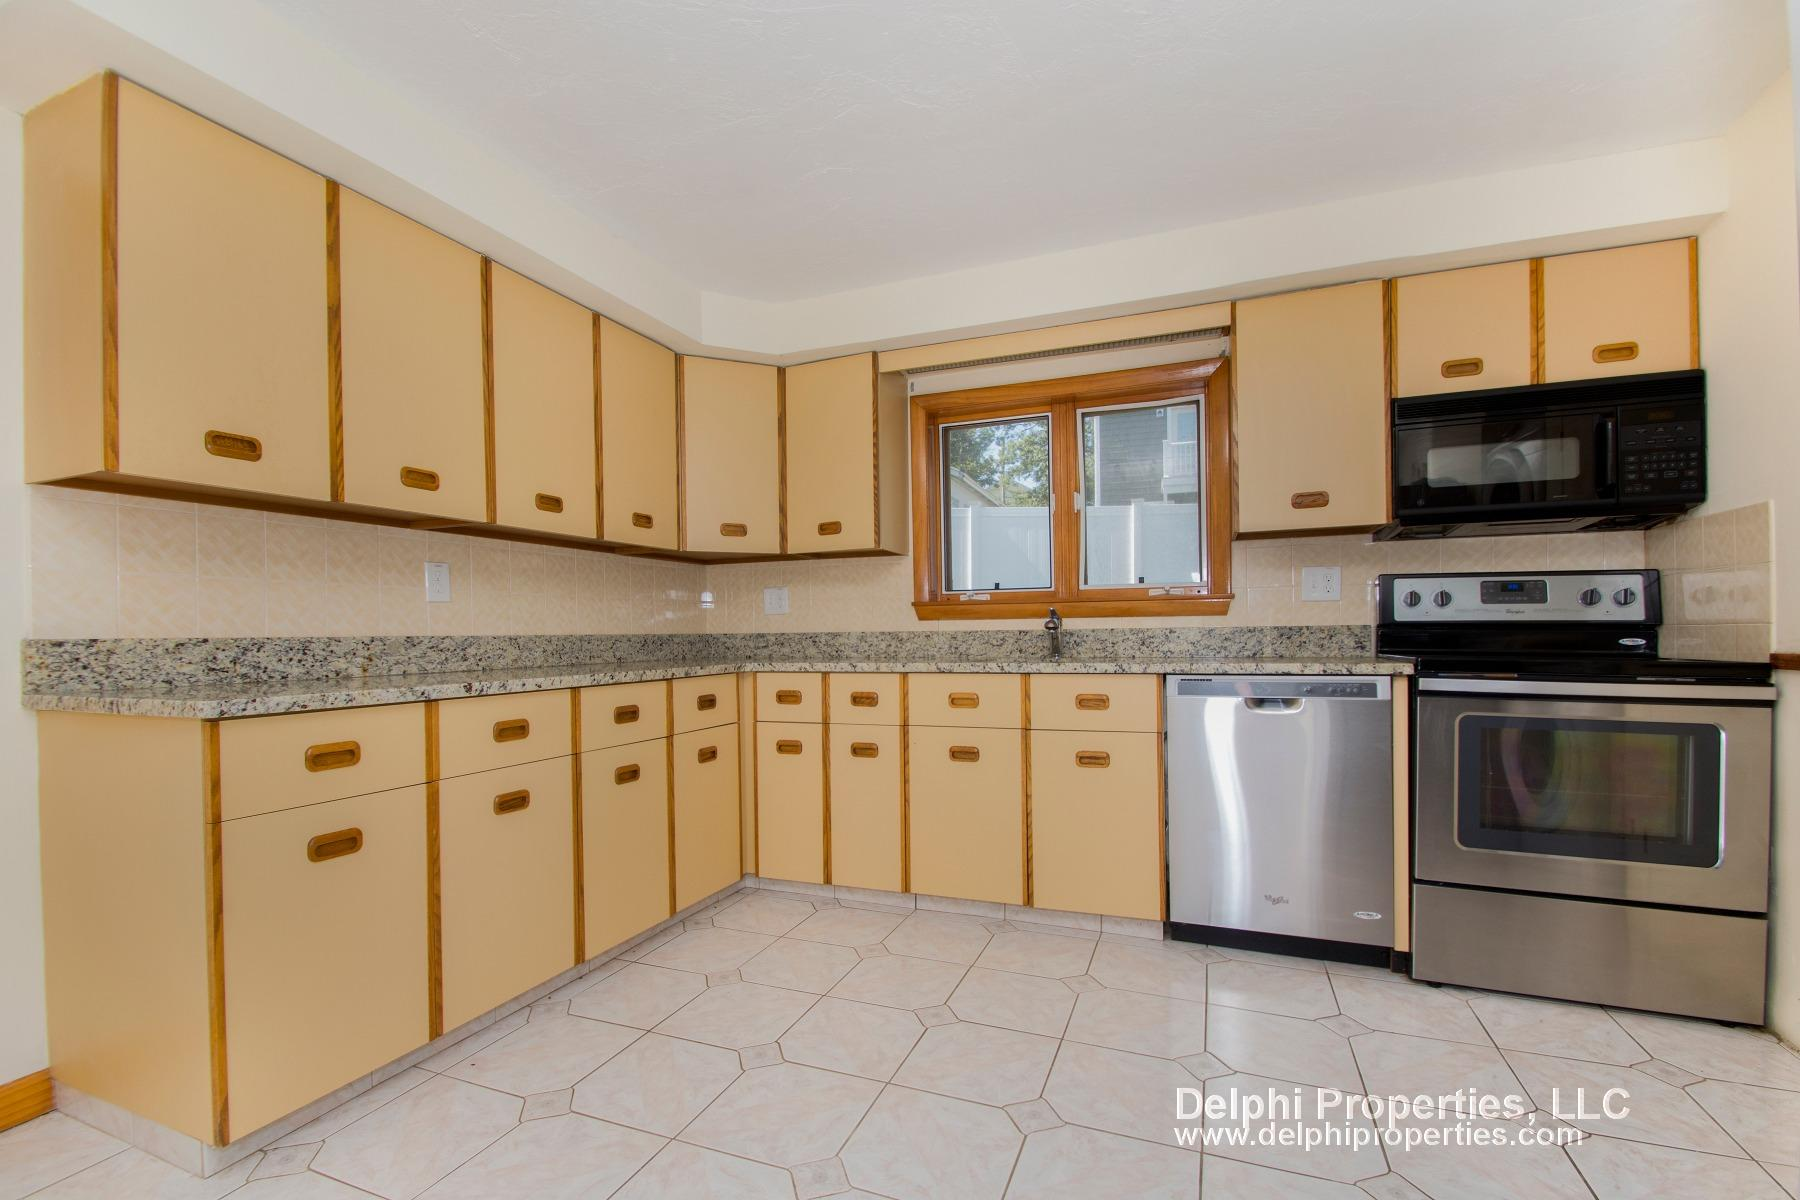 4 Bd on Brunswick St, 2 Bath, Parking Included, Laundry in Building